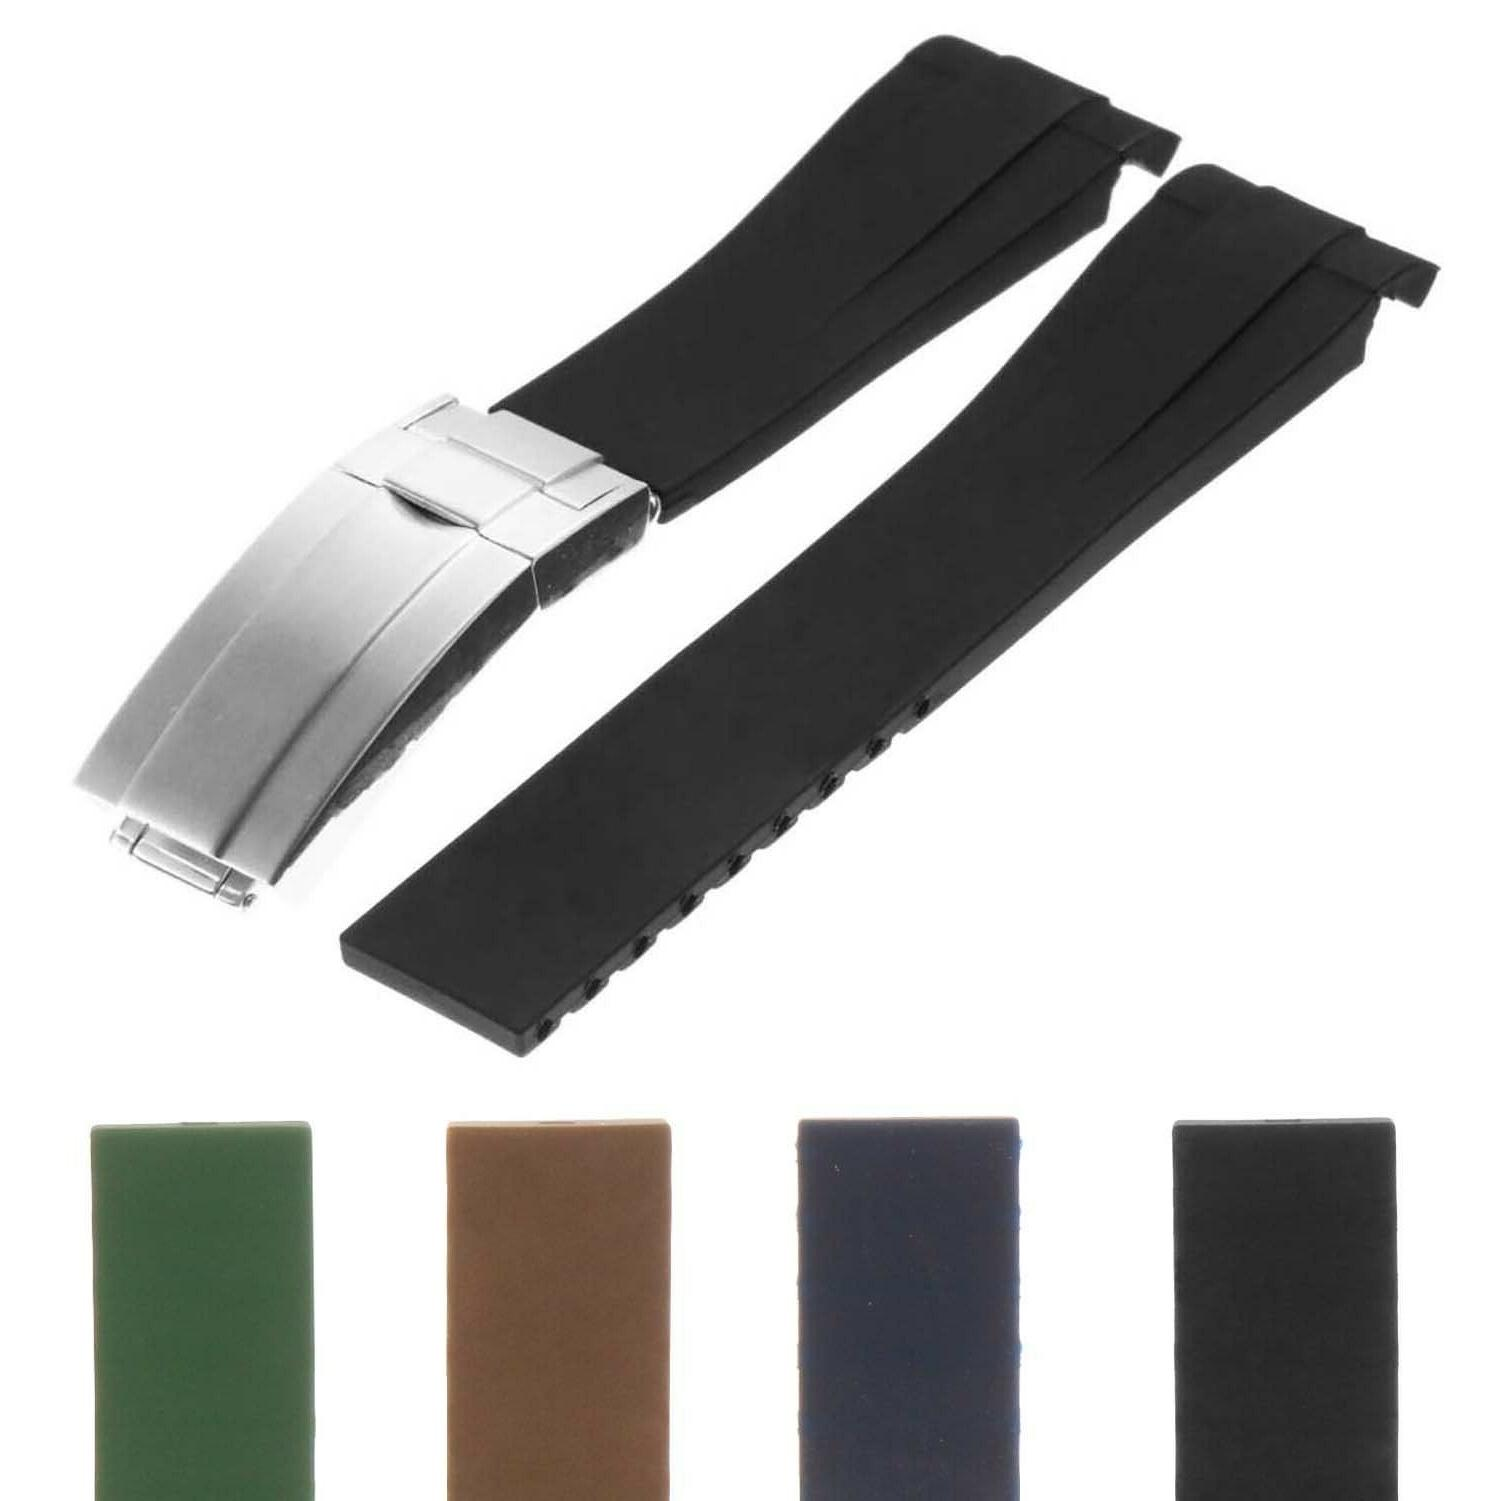 20mm silicone rubber replacement watch band strap